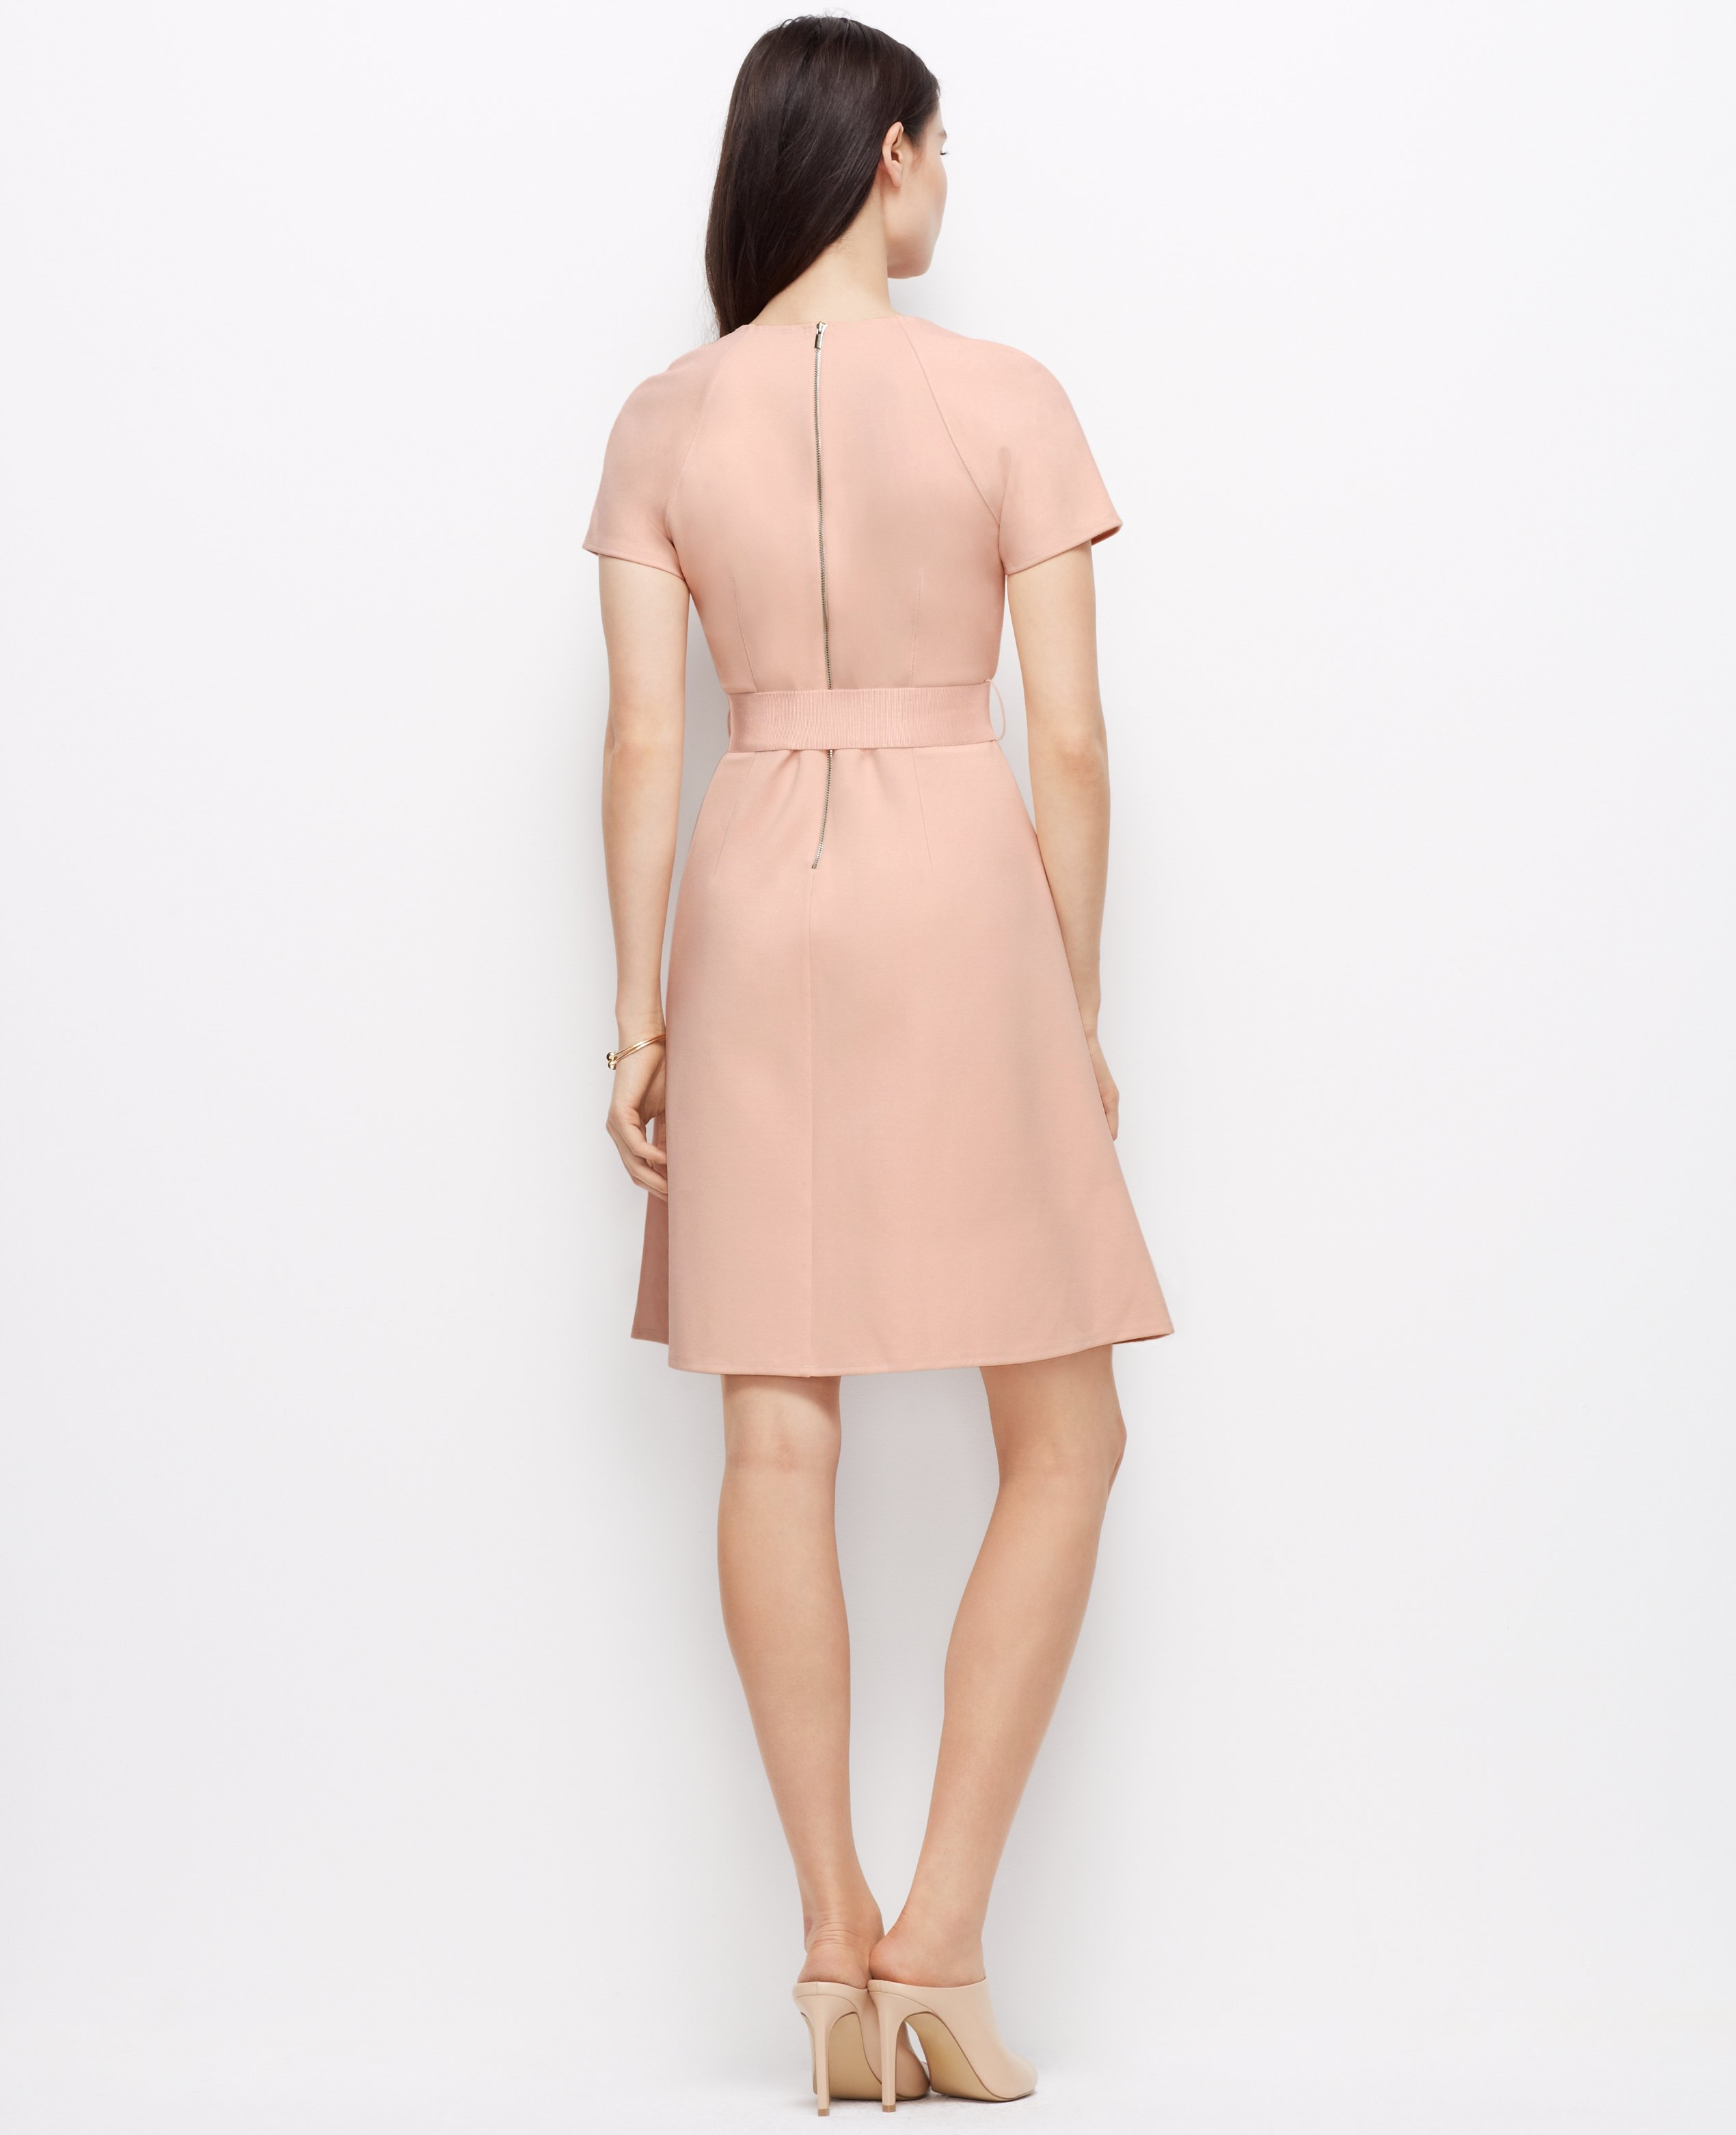 270c4cd40d5f Ann Taylor Petite Belted Ponte Dress in Pink - Lyst